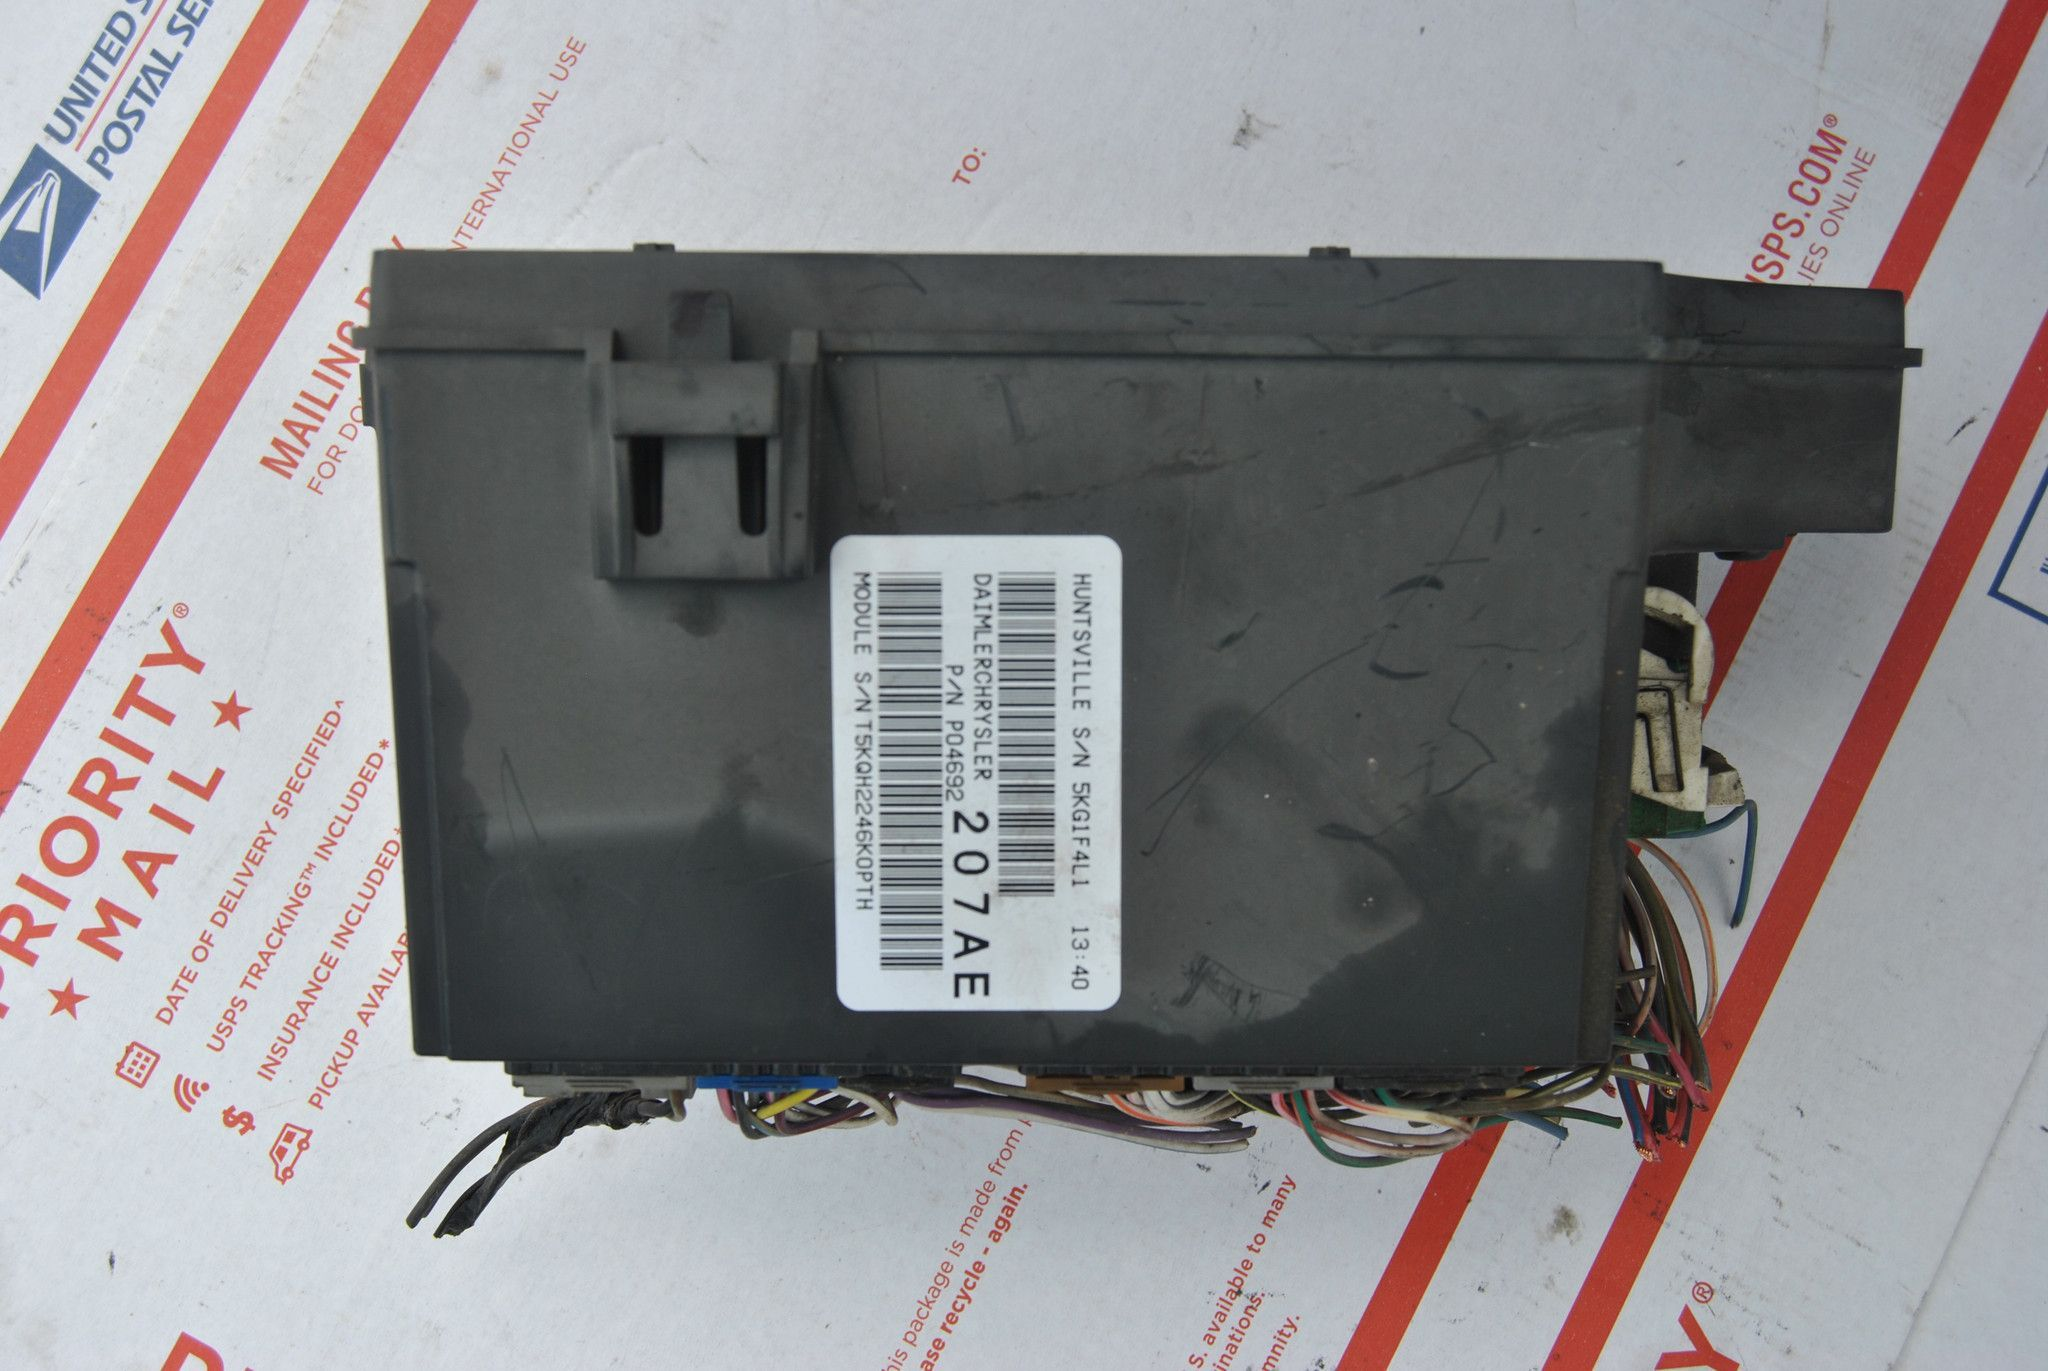 2007 Caliber Fuse Box Wiring Library 07 Dodge Location 24l Integrated Power Module P04692207ae Tipm Patriot